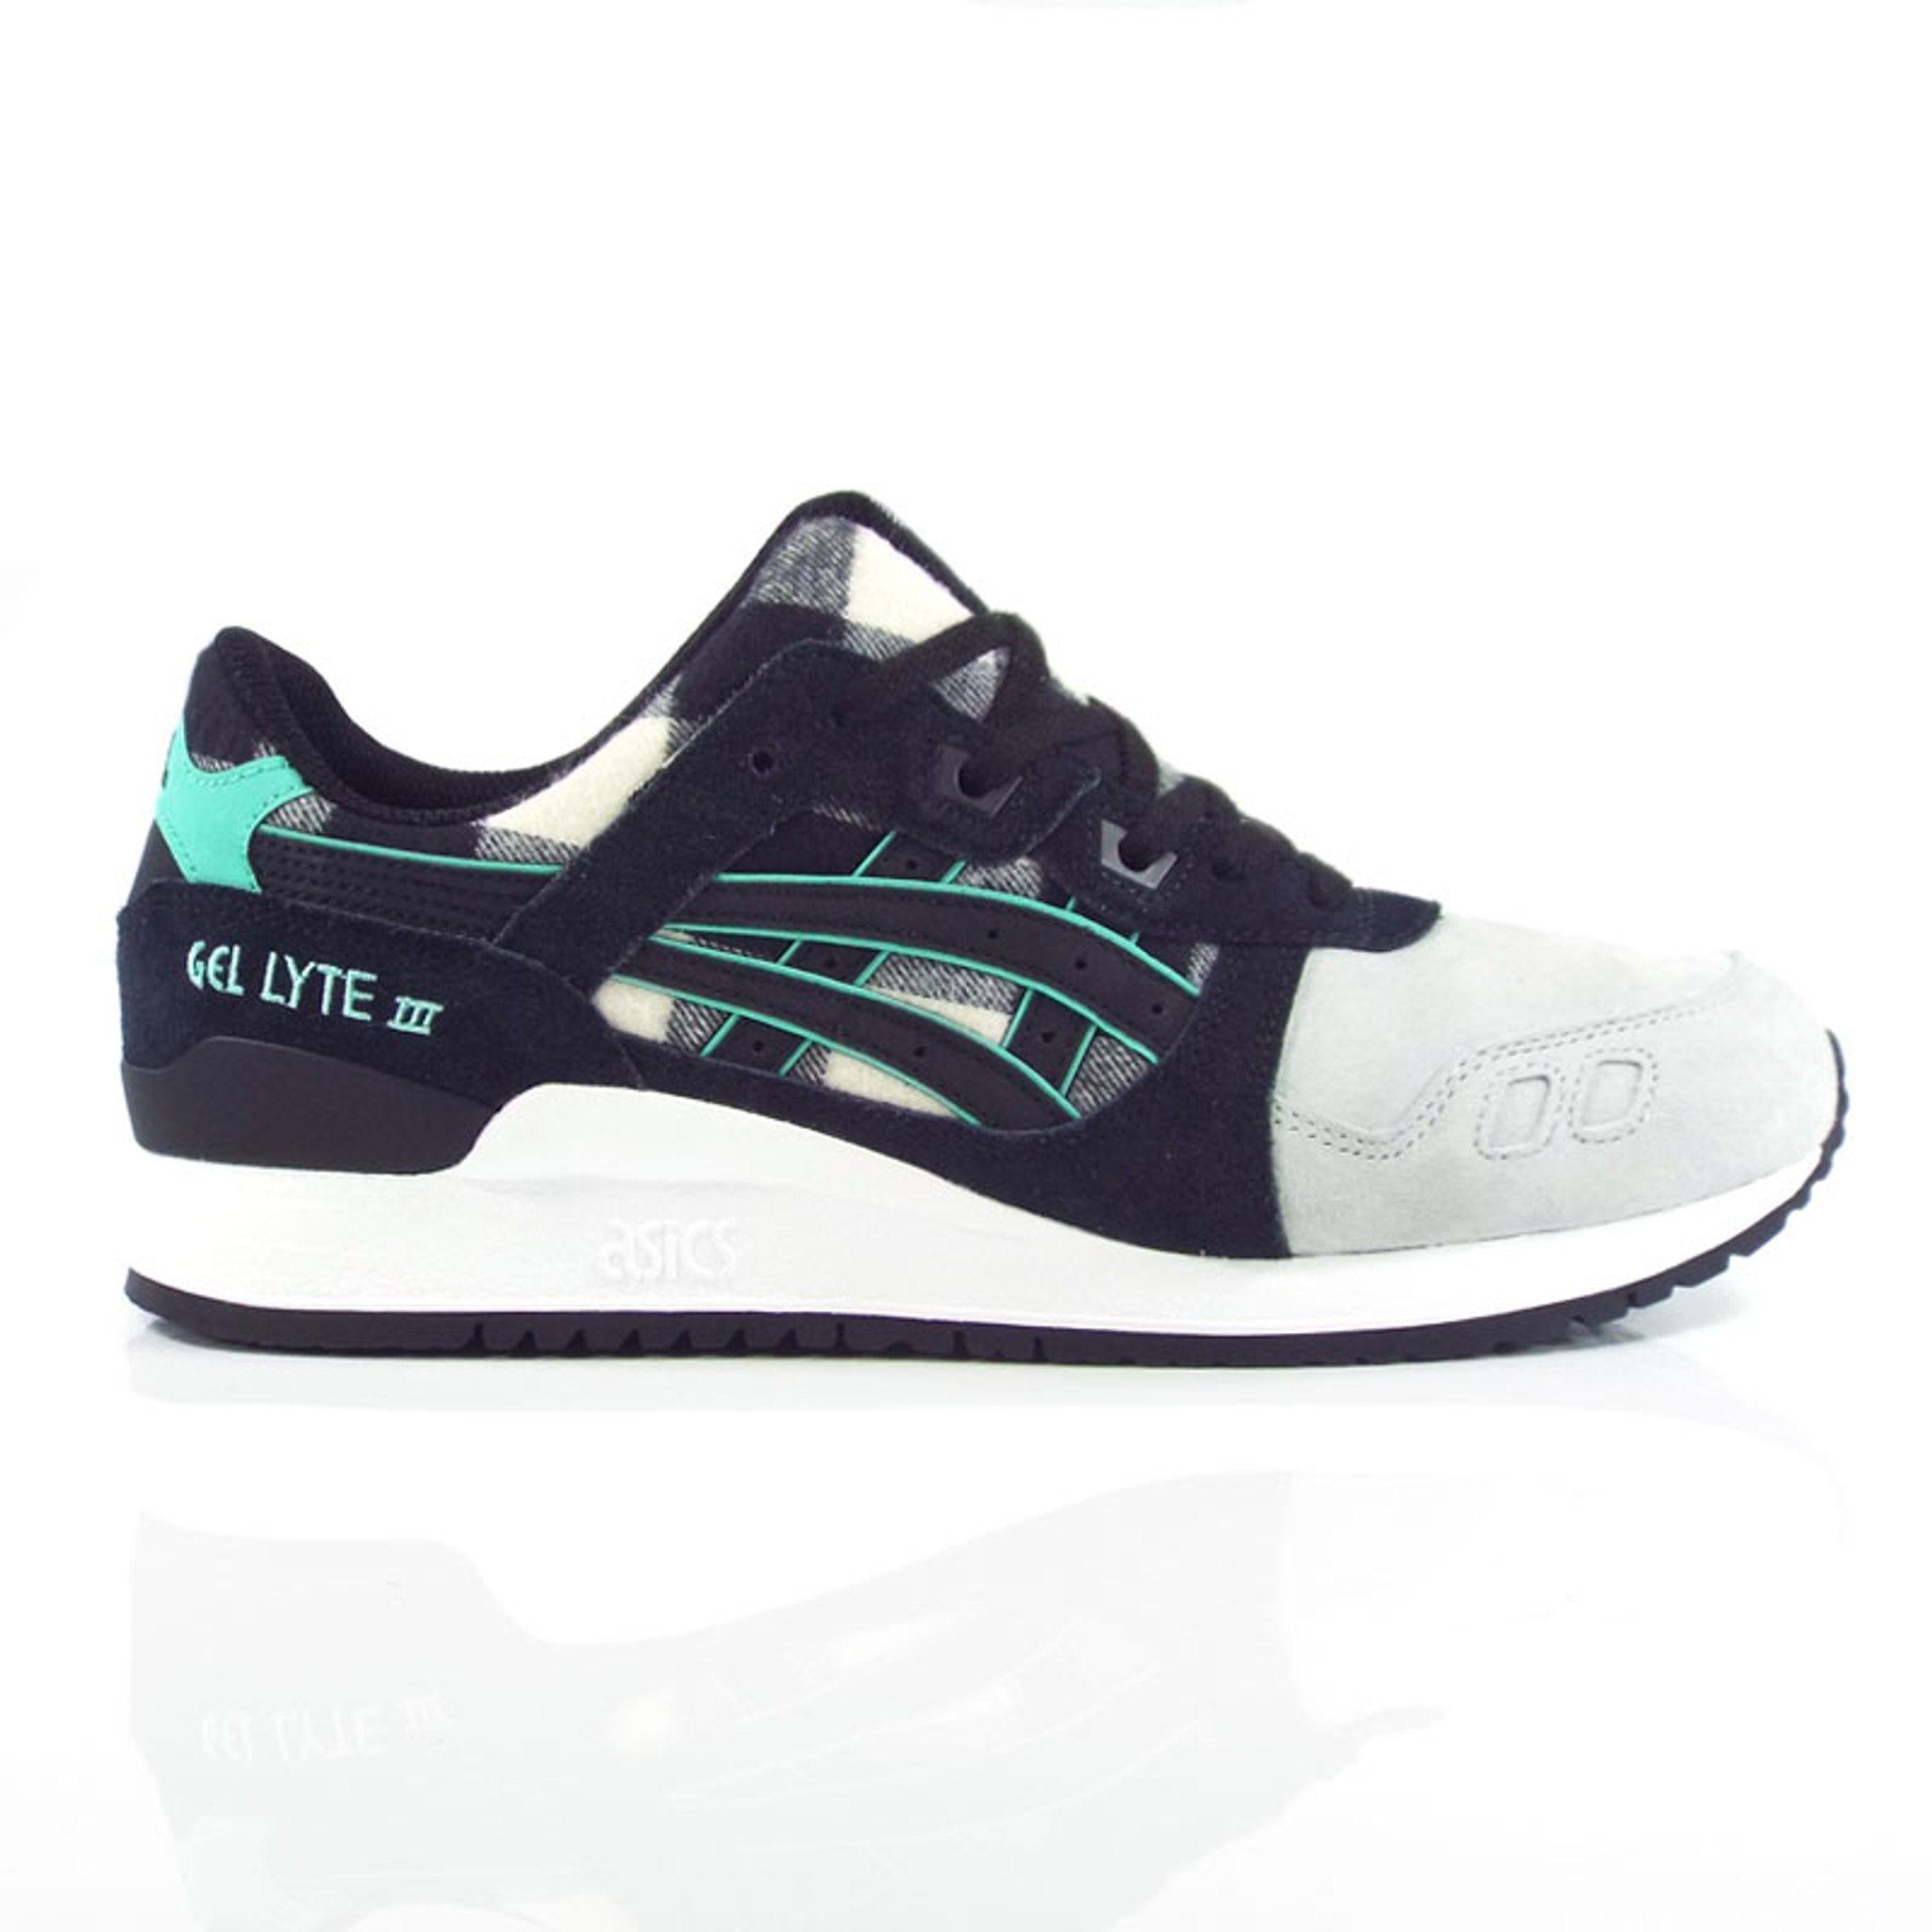 Asics Gel Lyte III Shoes WhiteBlack